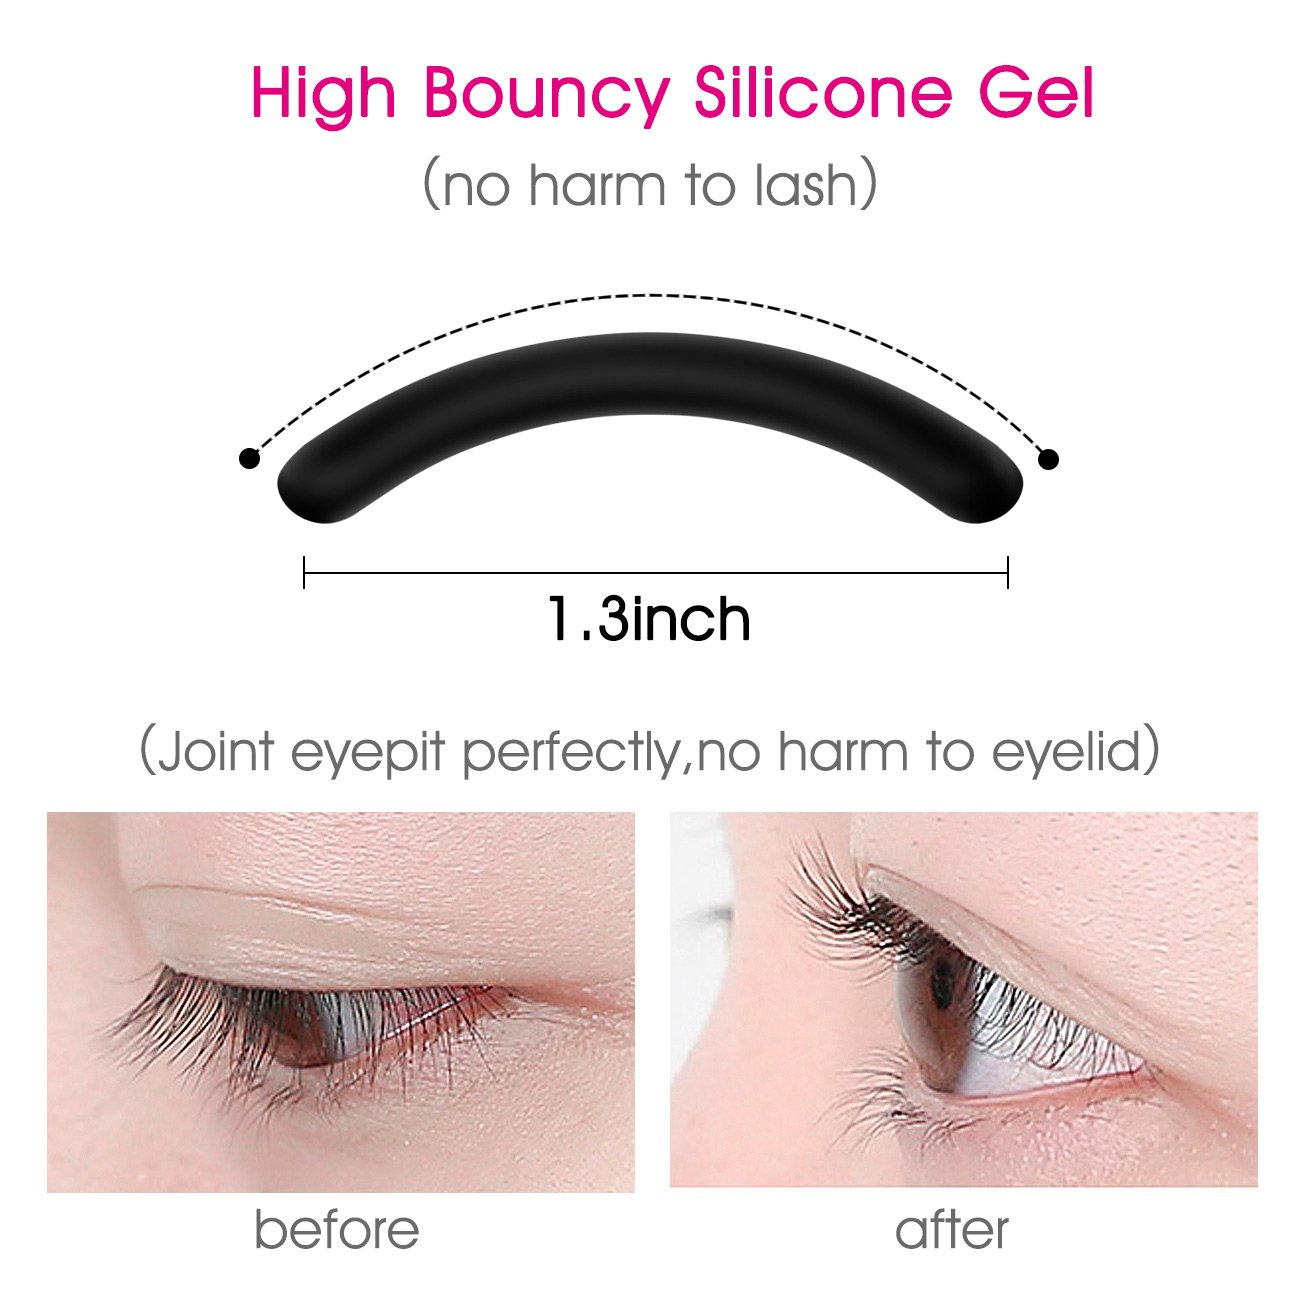 Eyelash Curler Lash Curler with Silicone Refill Pad Best Lash Curling Tool - Long lasting & Natural Looking Curls Painless, No Pinching, 1 Pack